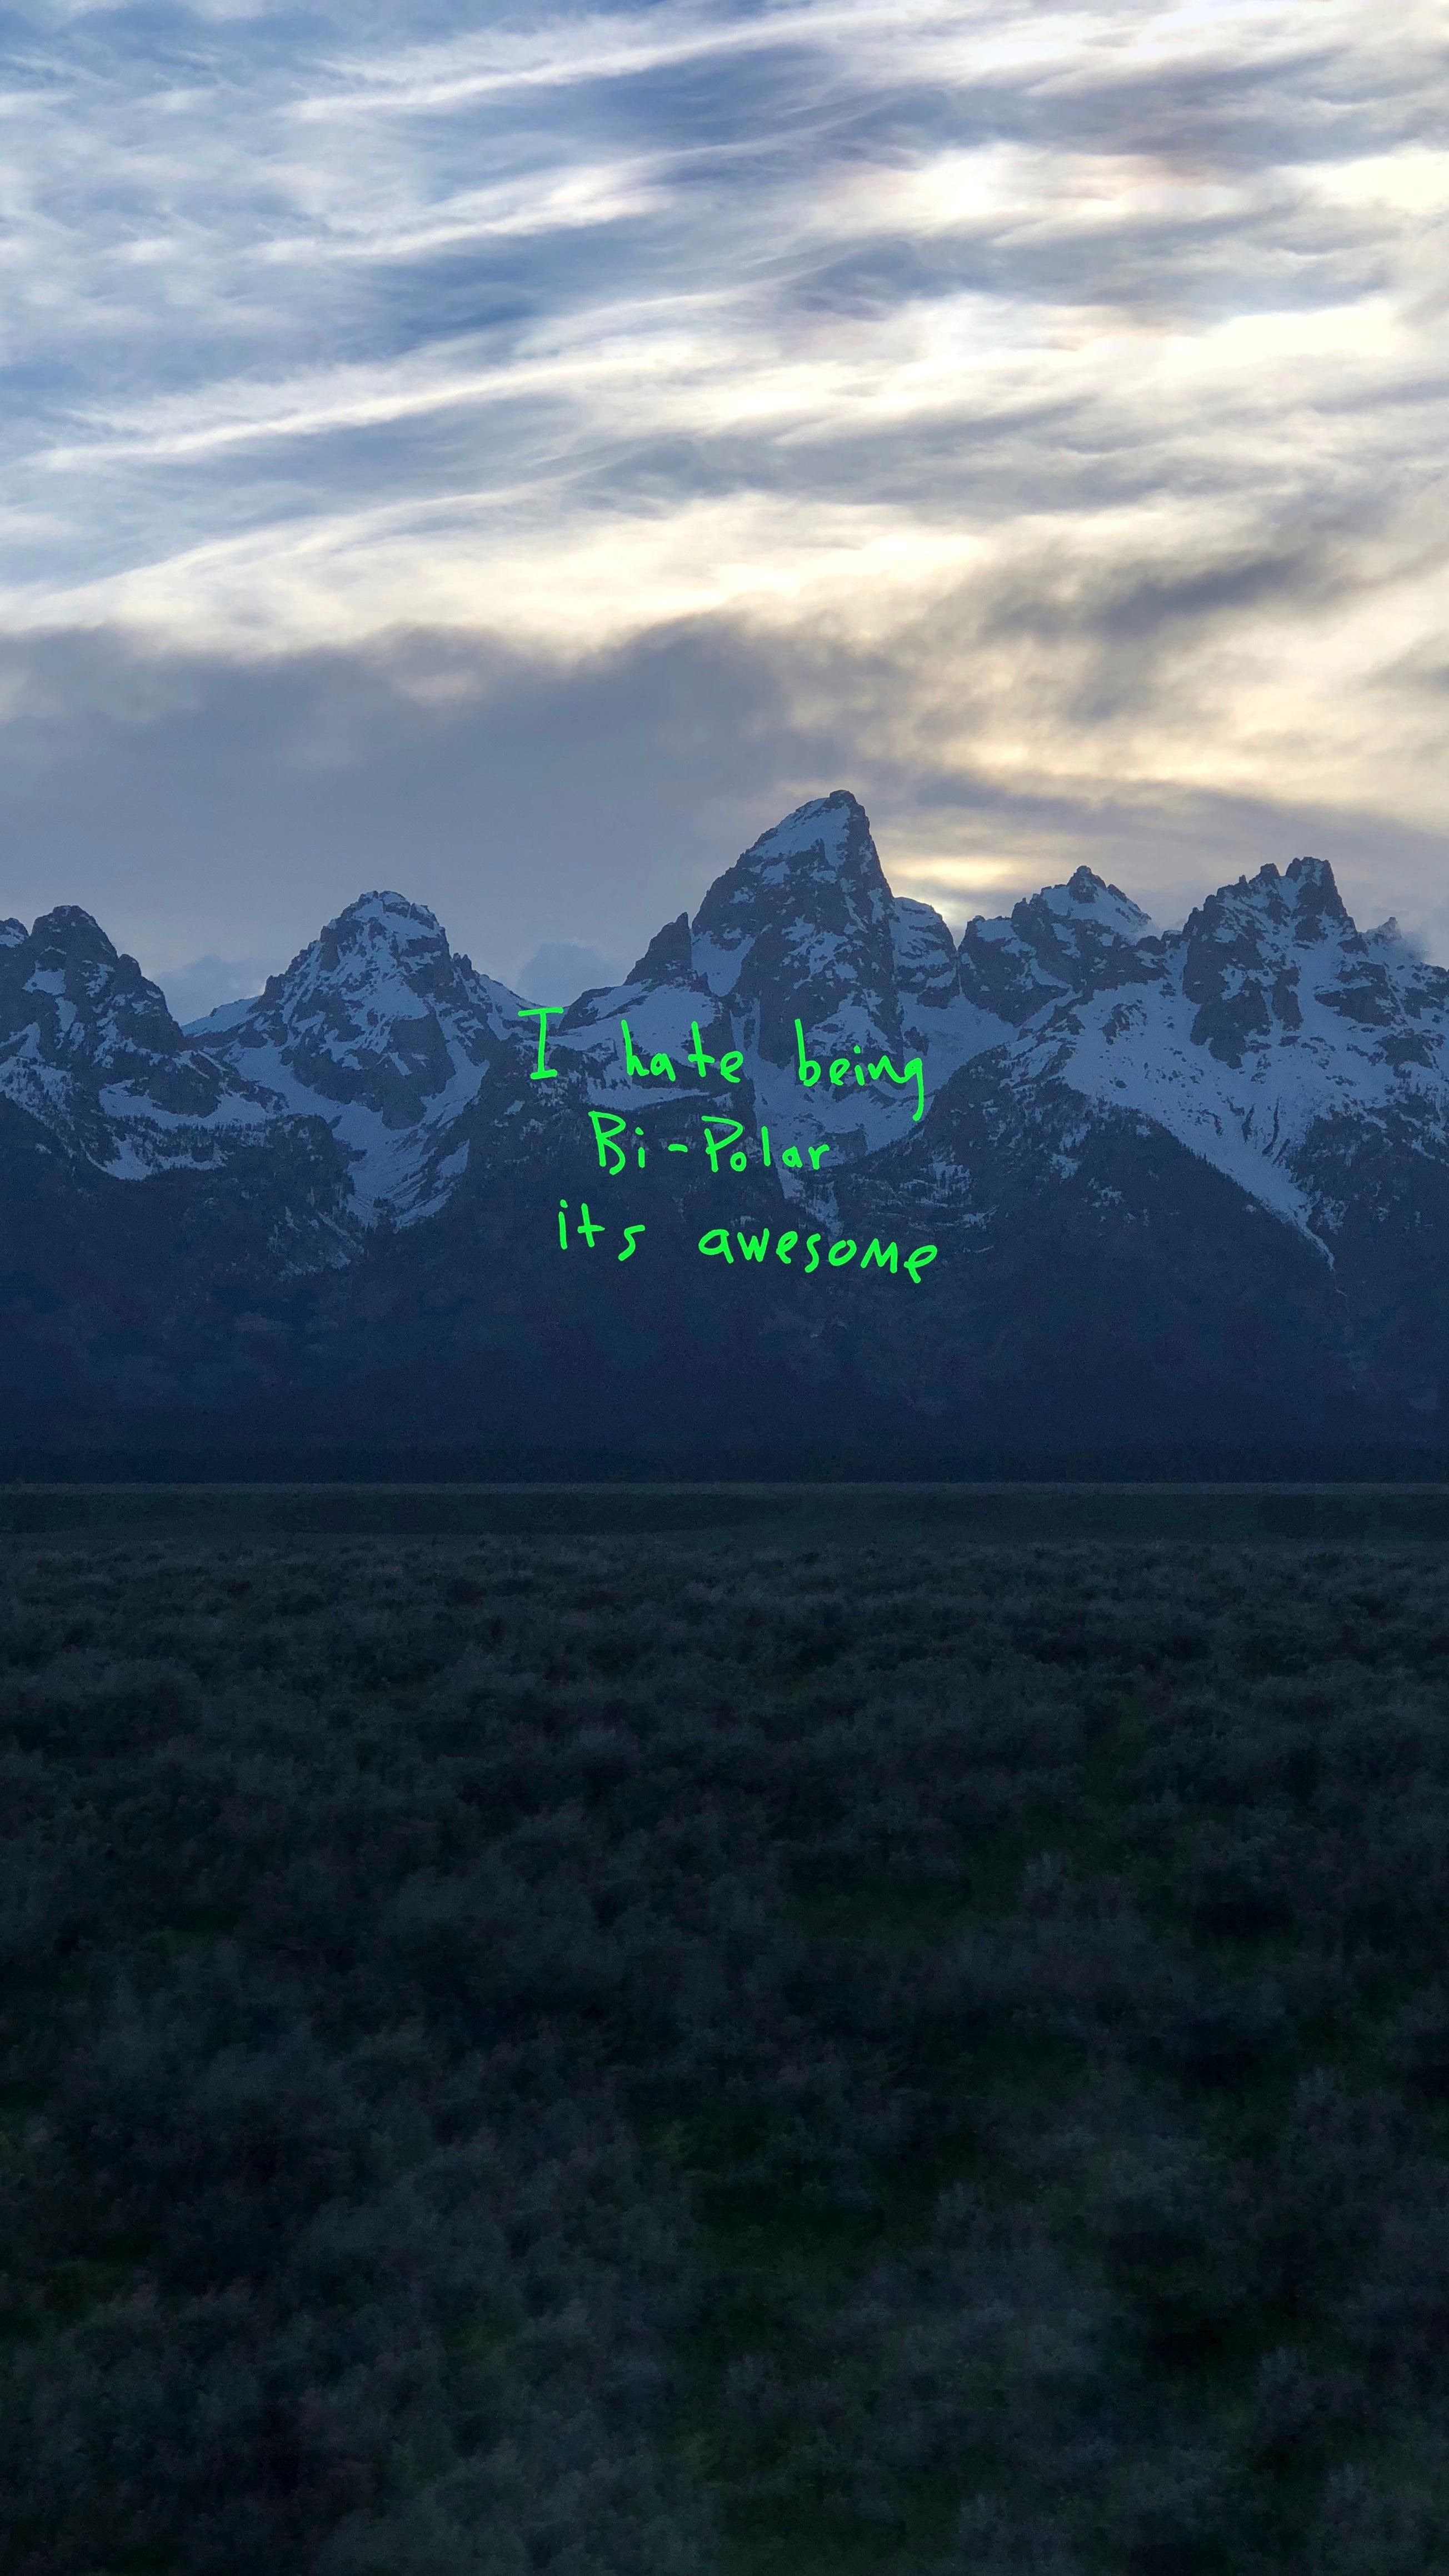 Kanye West Ye In 2020 Iphone Wallpaper Music Cover Wallpaper Kanye West Wallpaper